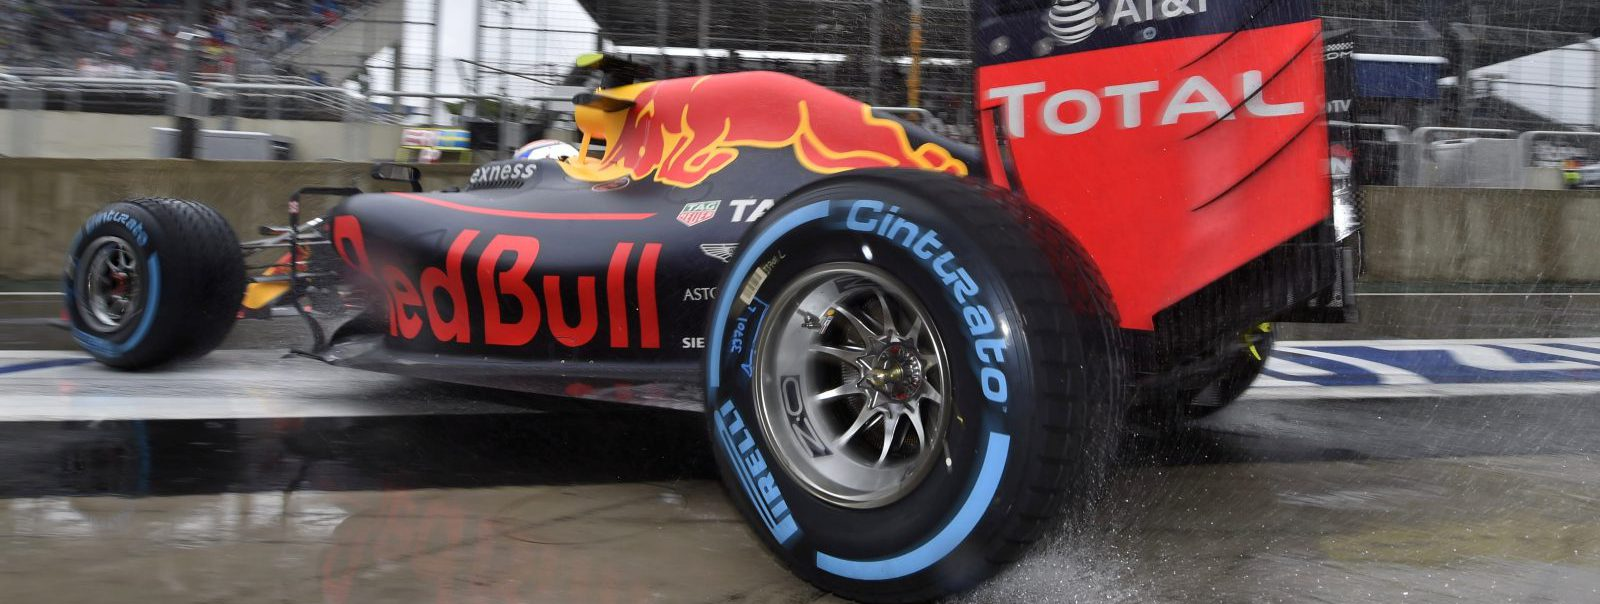 Grand Prix Brazil, Circuit Autódromo Carlos Pace, Interlagos, Sao Paulo, Brazil, Formula1, Round 20, 2016 #33 Max Verstappen (NLD, Red Bull Racing), *** Local Caption *** www.hoch-zwei.net  photo: Peter van Egmond / Hoch Zwei